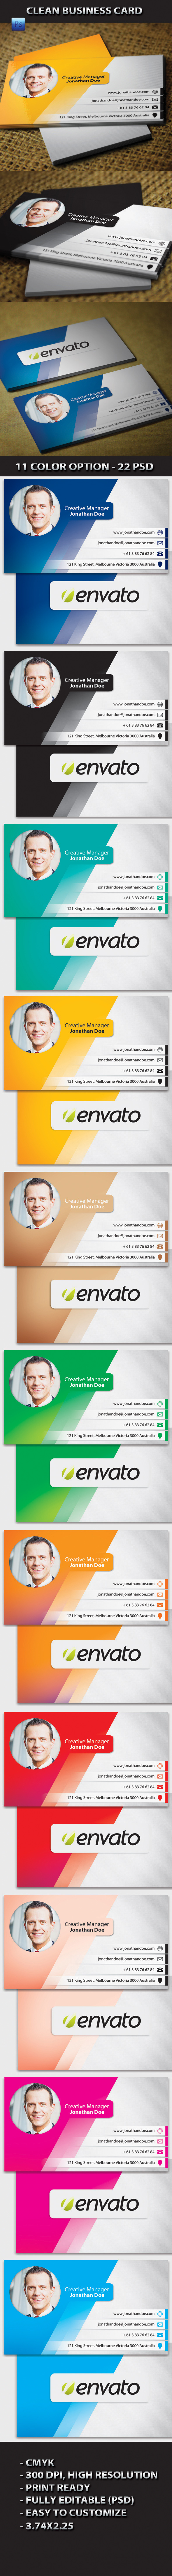 Creative Professional Business Card #card #bussiness #branding